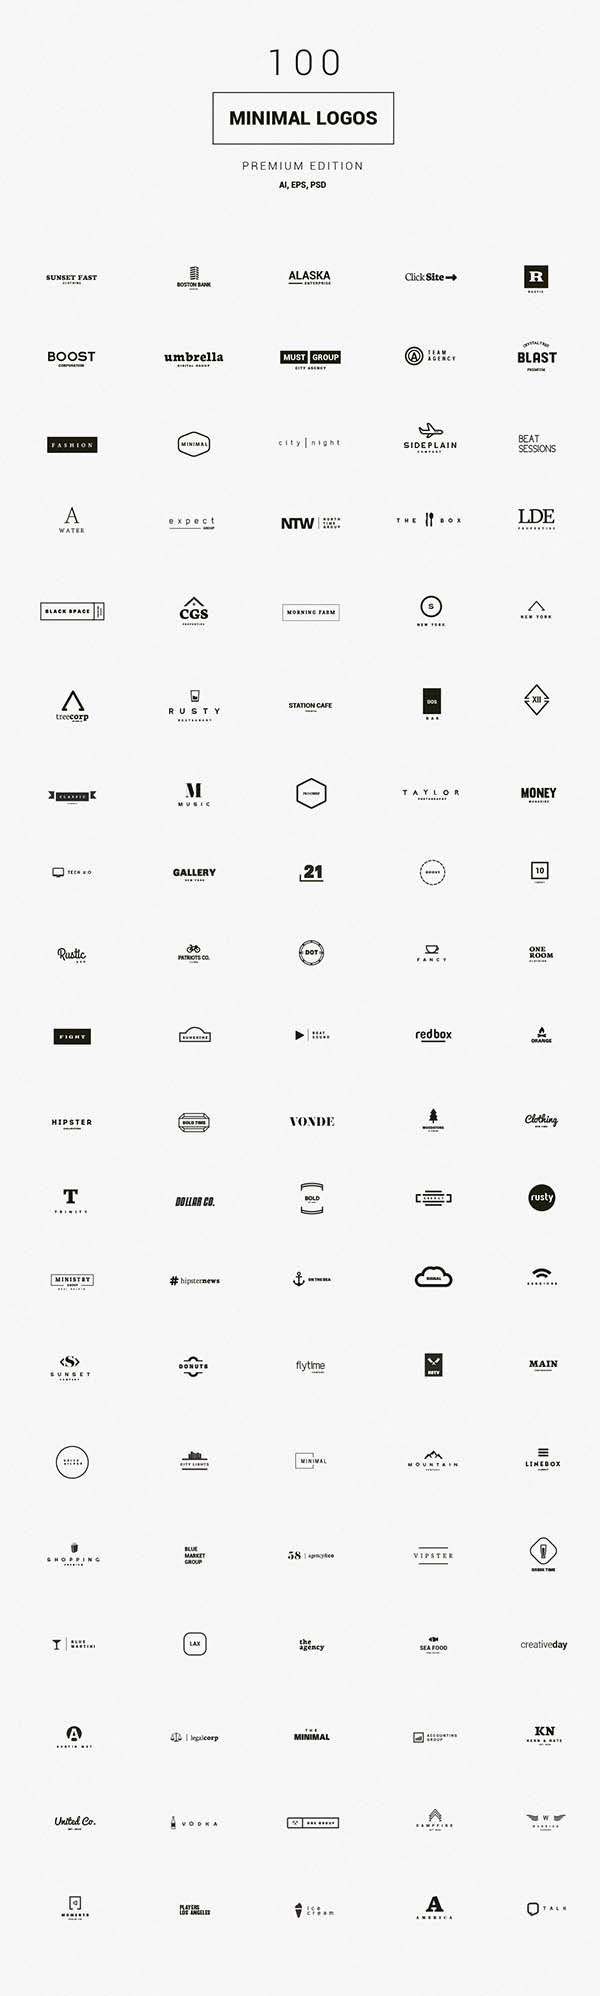 900+ Amazing Logos Bundle Available in .AI & .PSD - 25